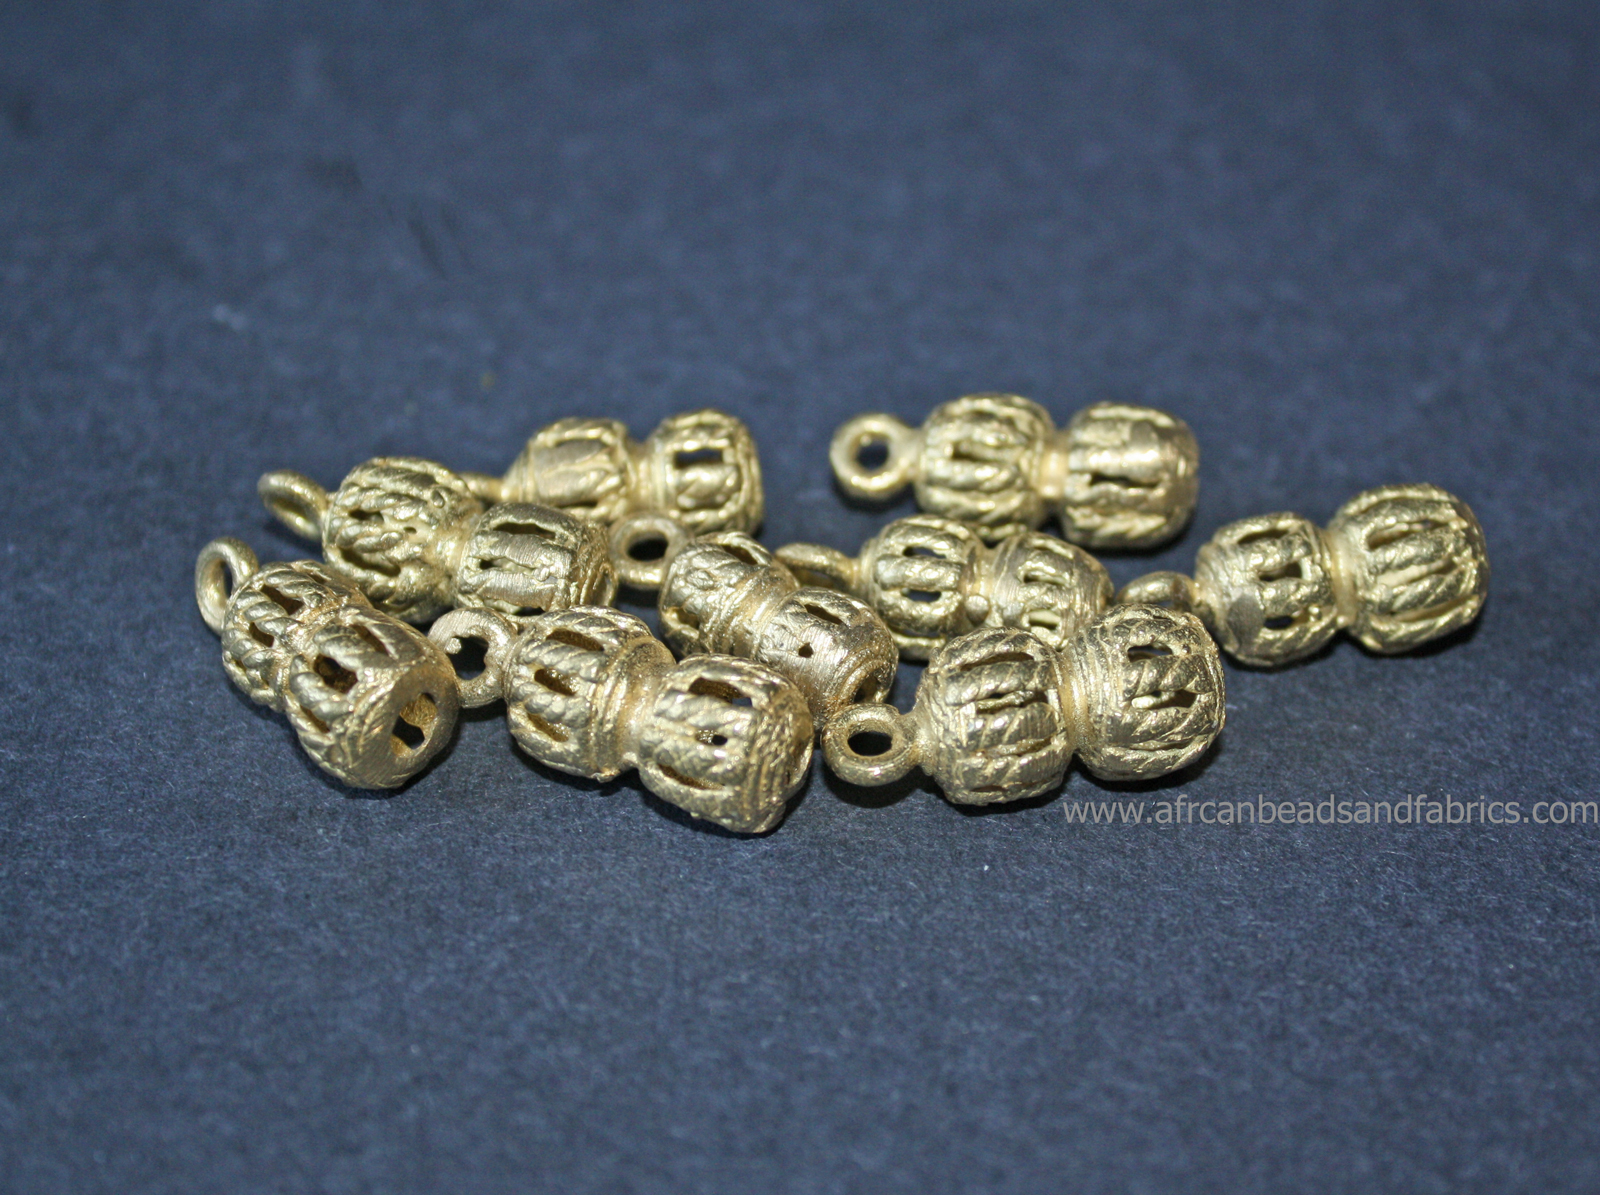 Brass-Gourd-Pendants-Woven-Design-side-view-watermarked